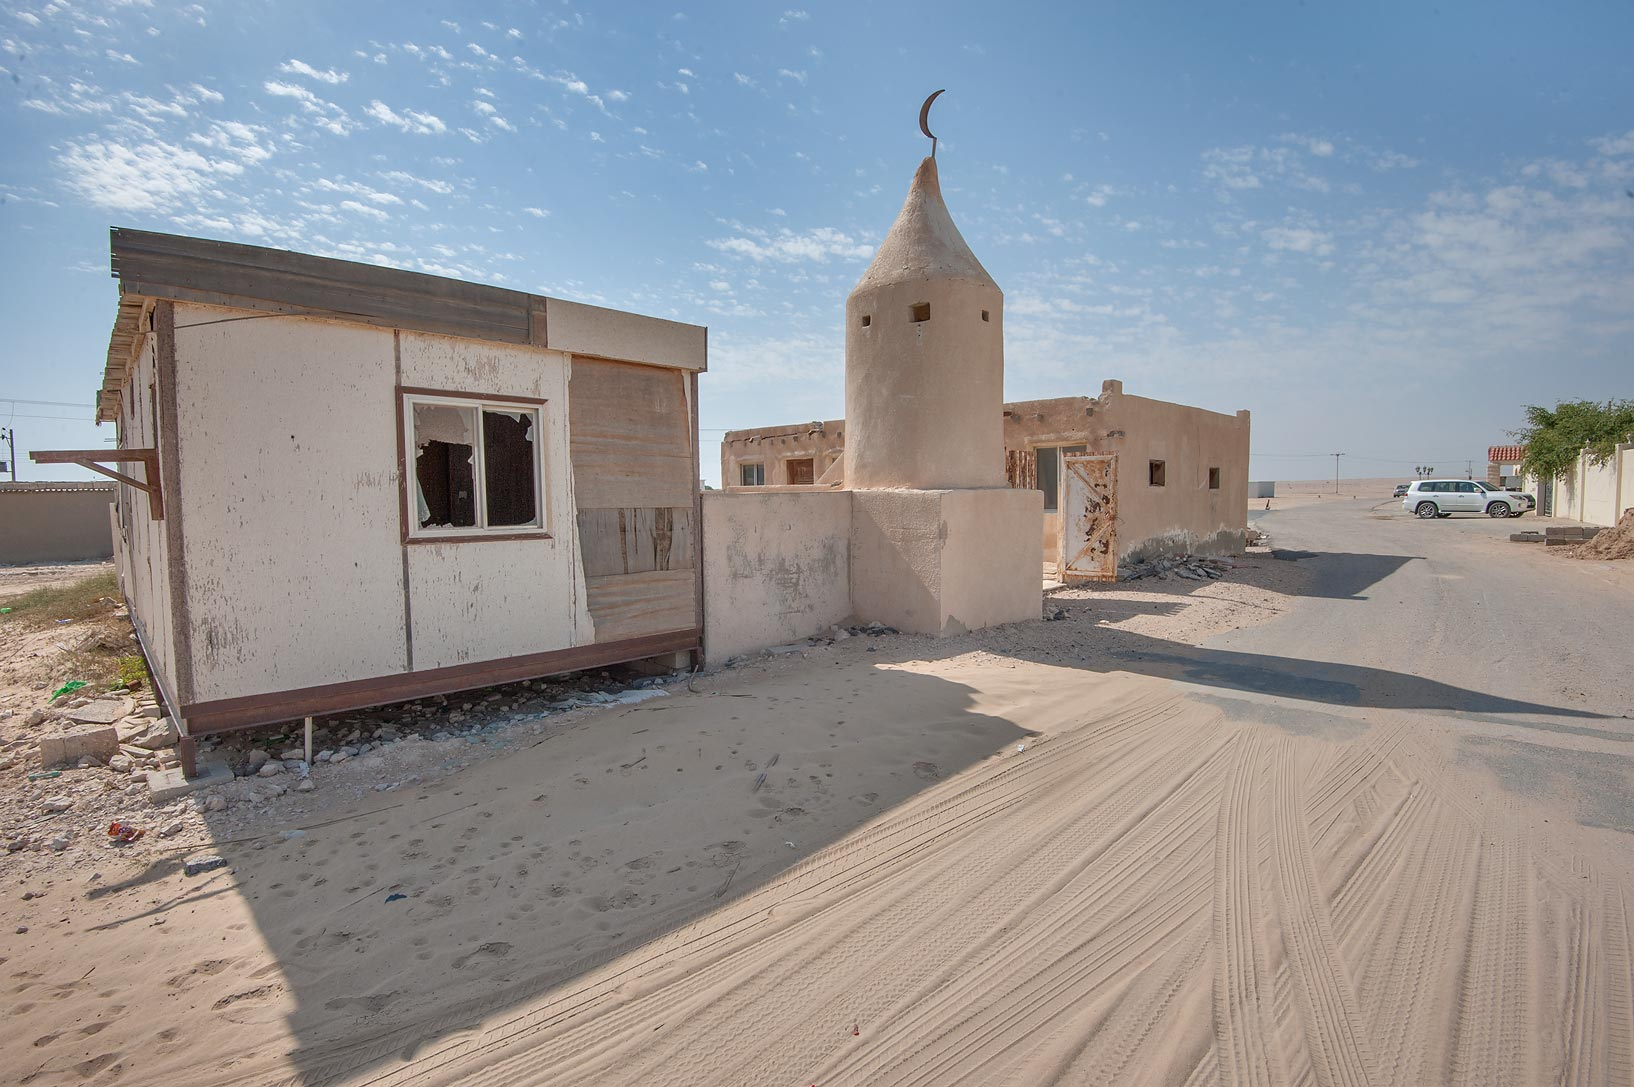 Old mosque in Umm Houtah. Southern Qatar